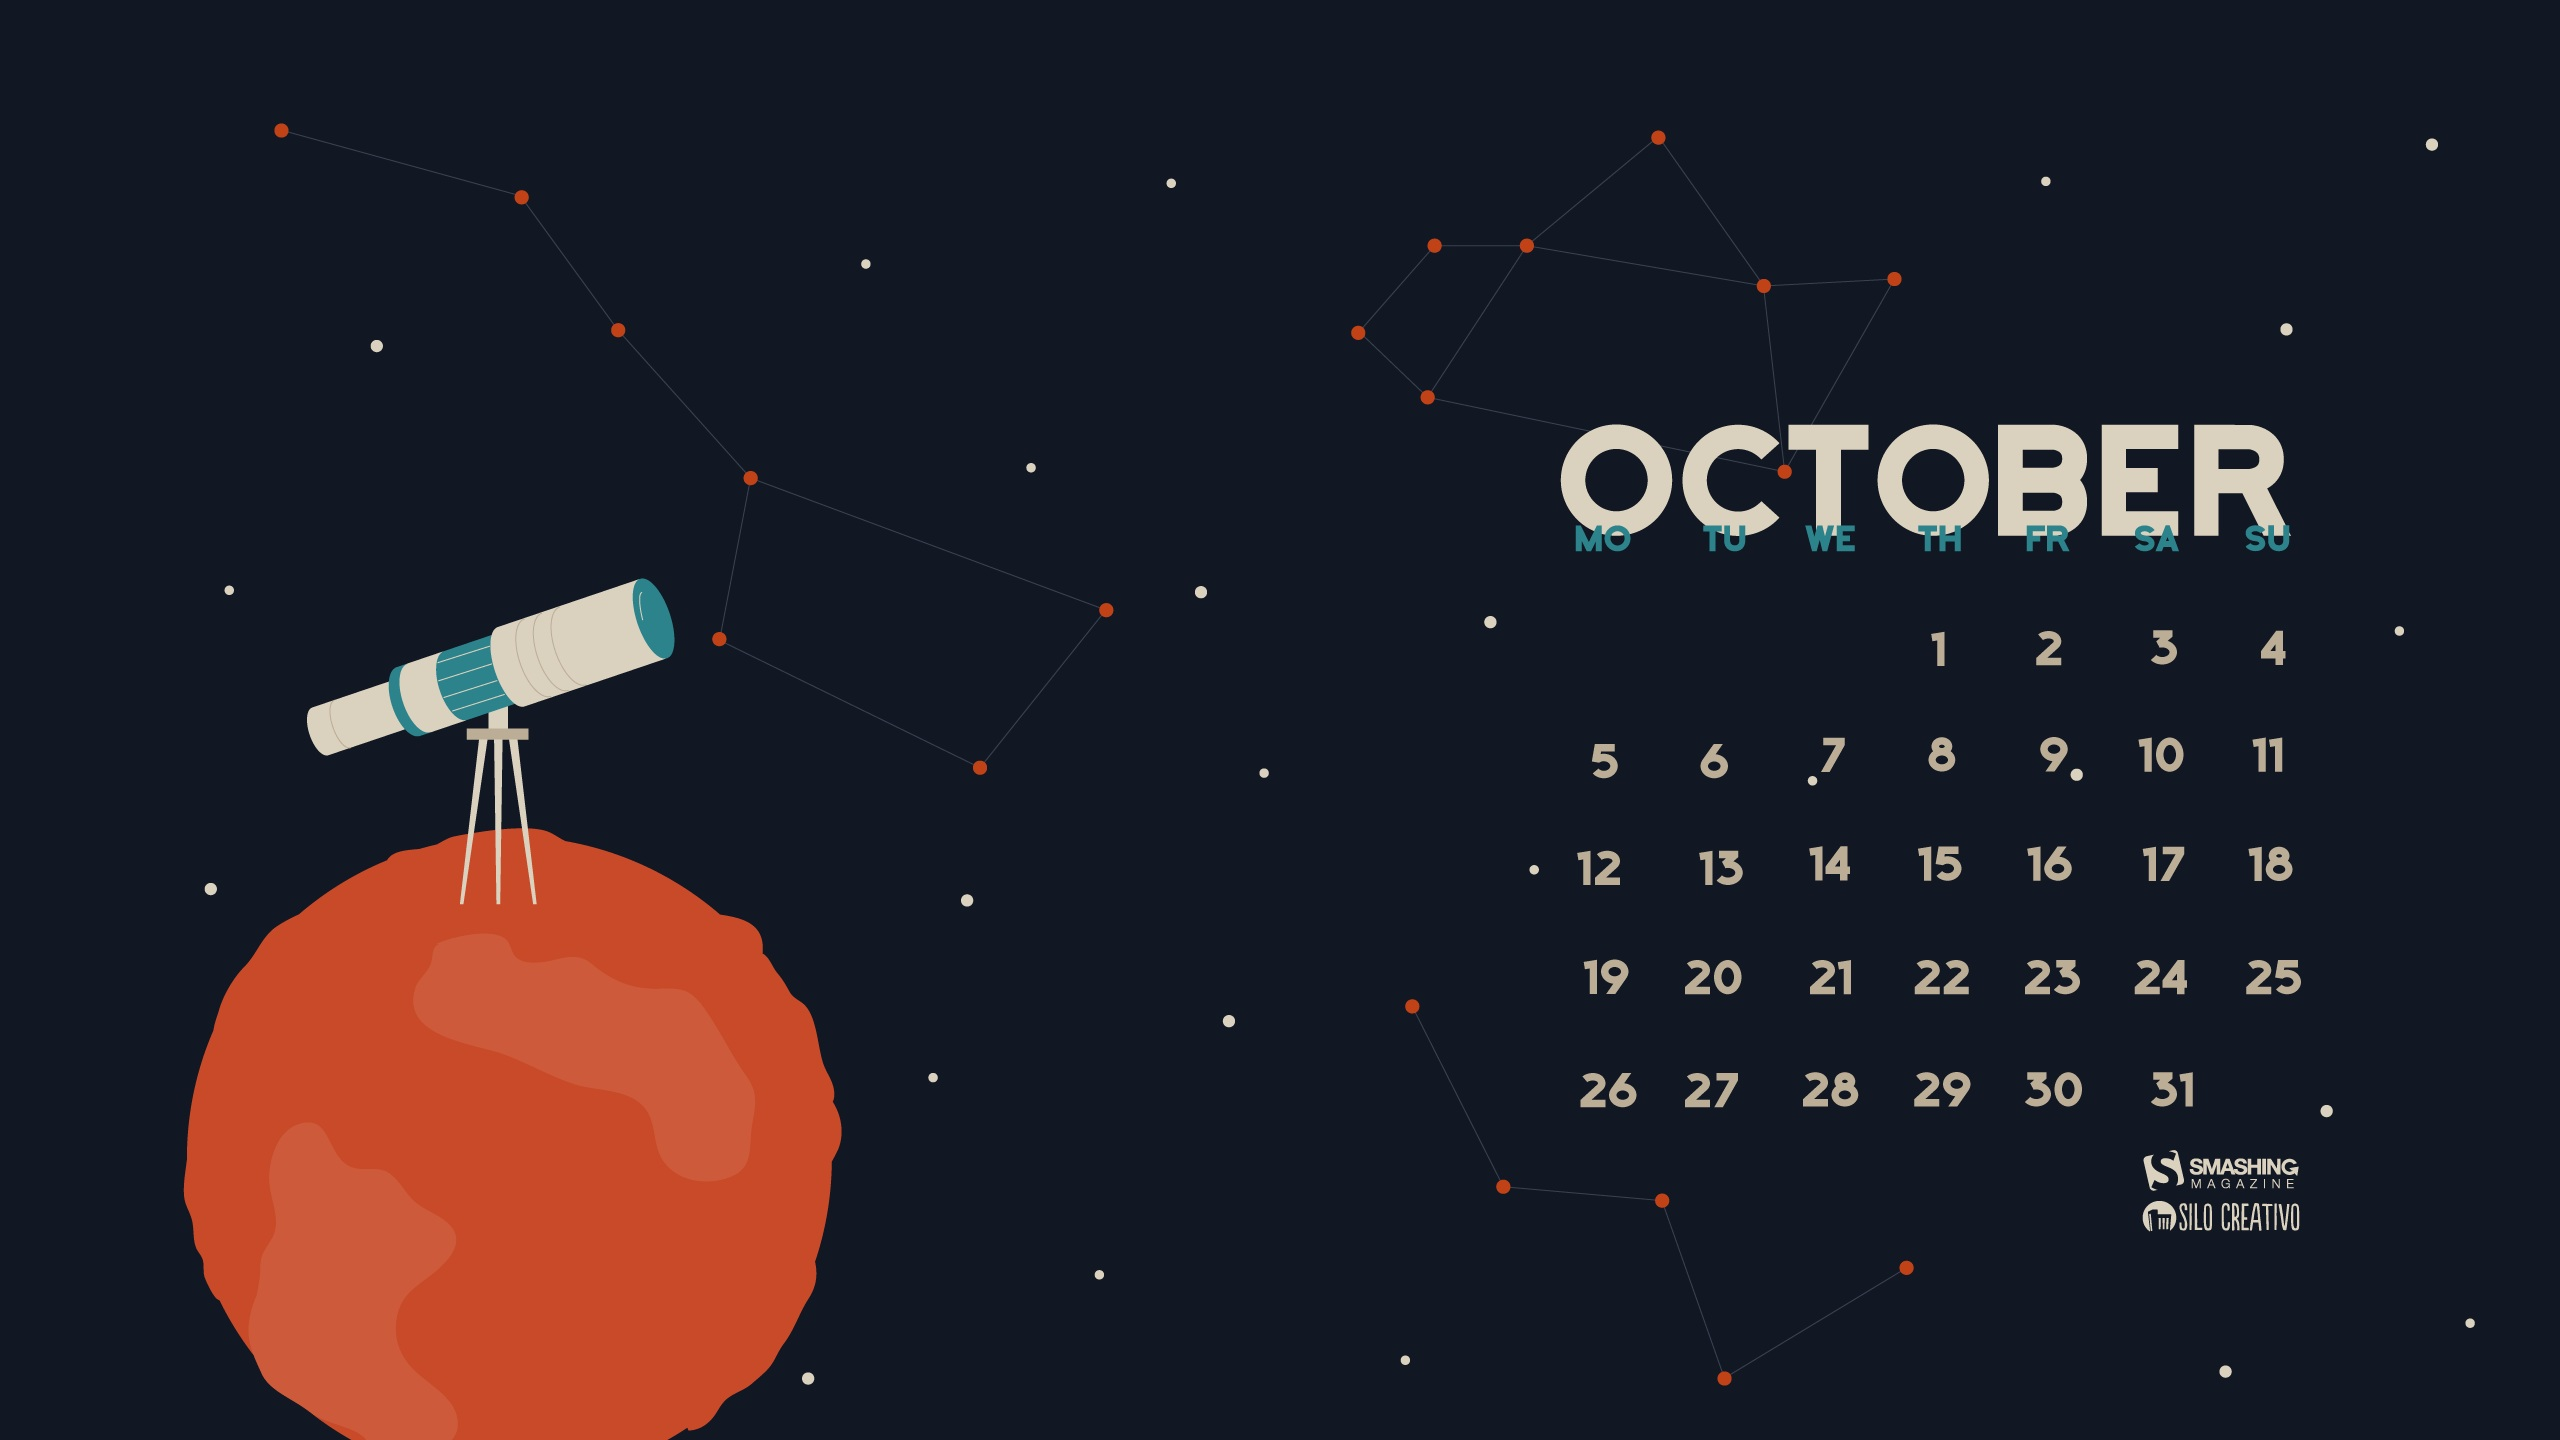 2 october wallpaper download